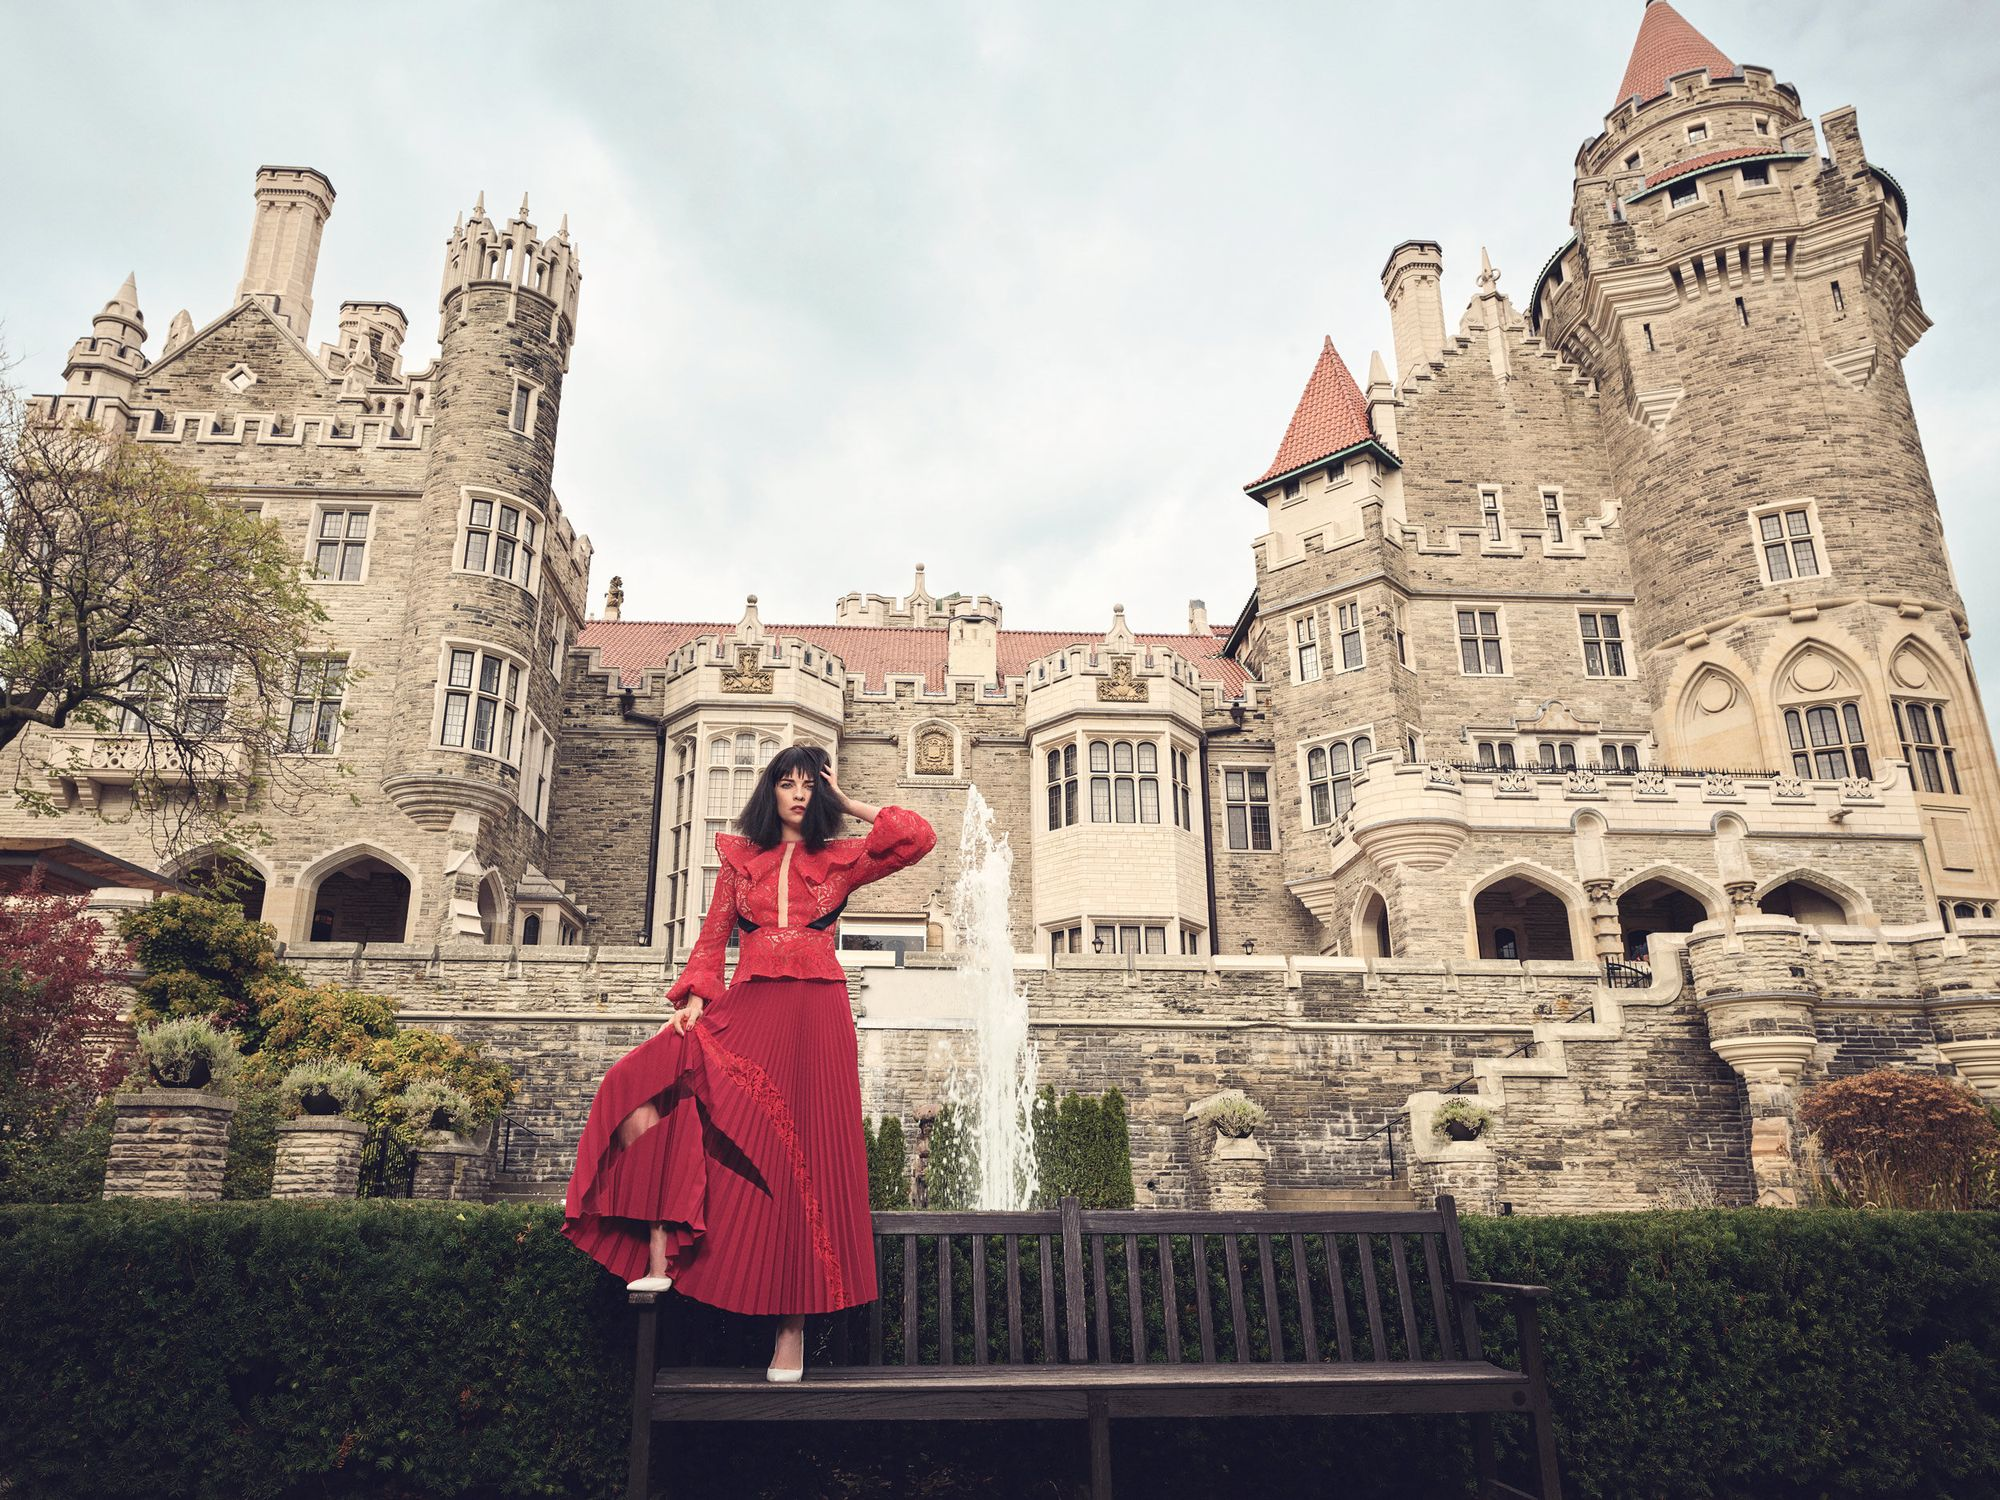 Annie Murpyy outside a castle in a red dress.